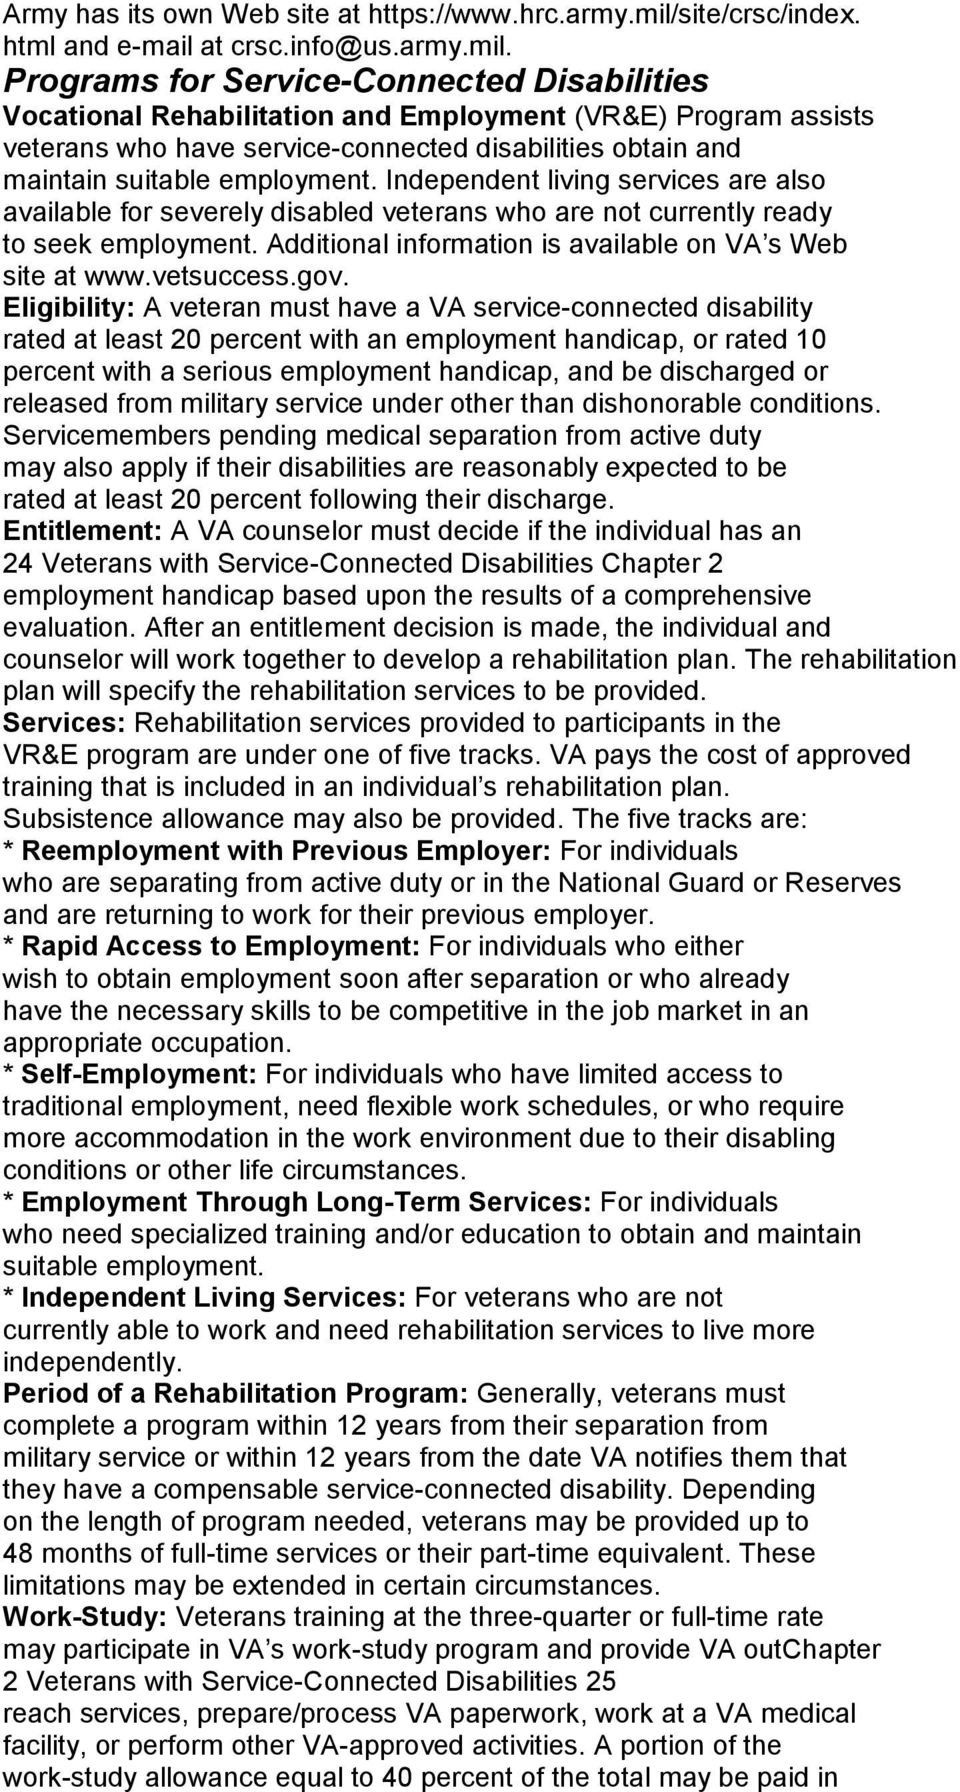 Programs for Service-Connected Disabilities Vocational Rehabilitation and Employment (VR&E) Program assists veterans who have service-connected disabilities obtain and maintain suitable employment.